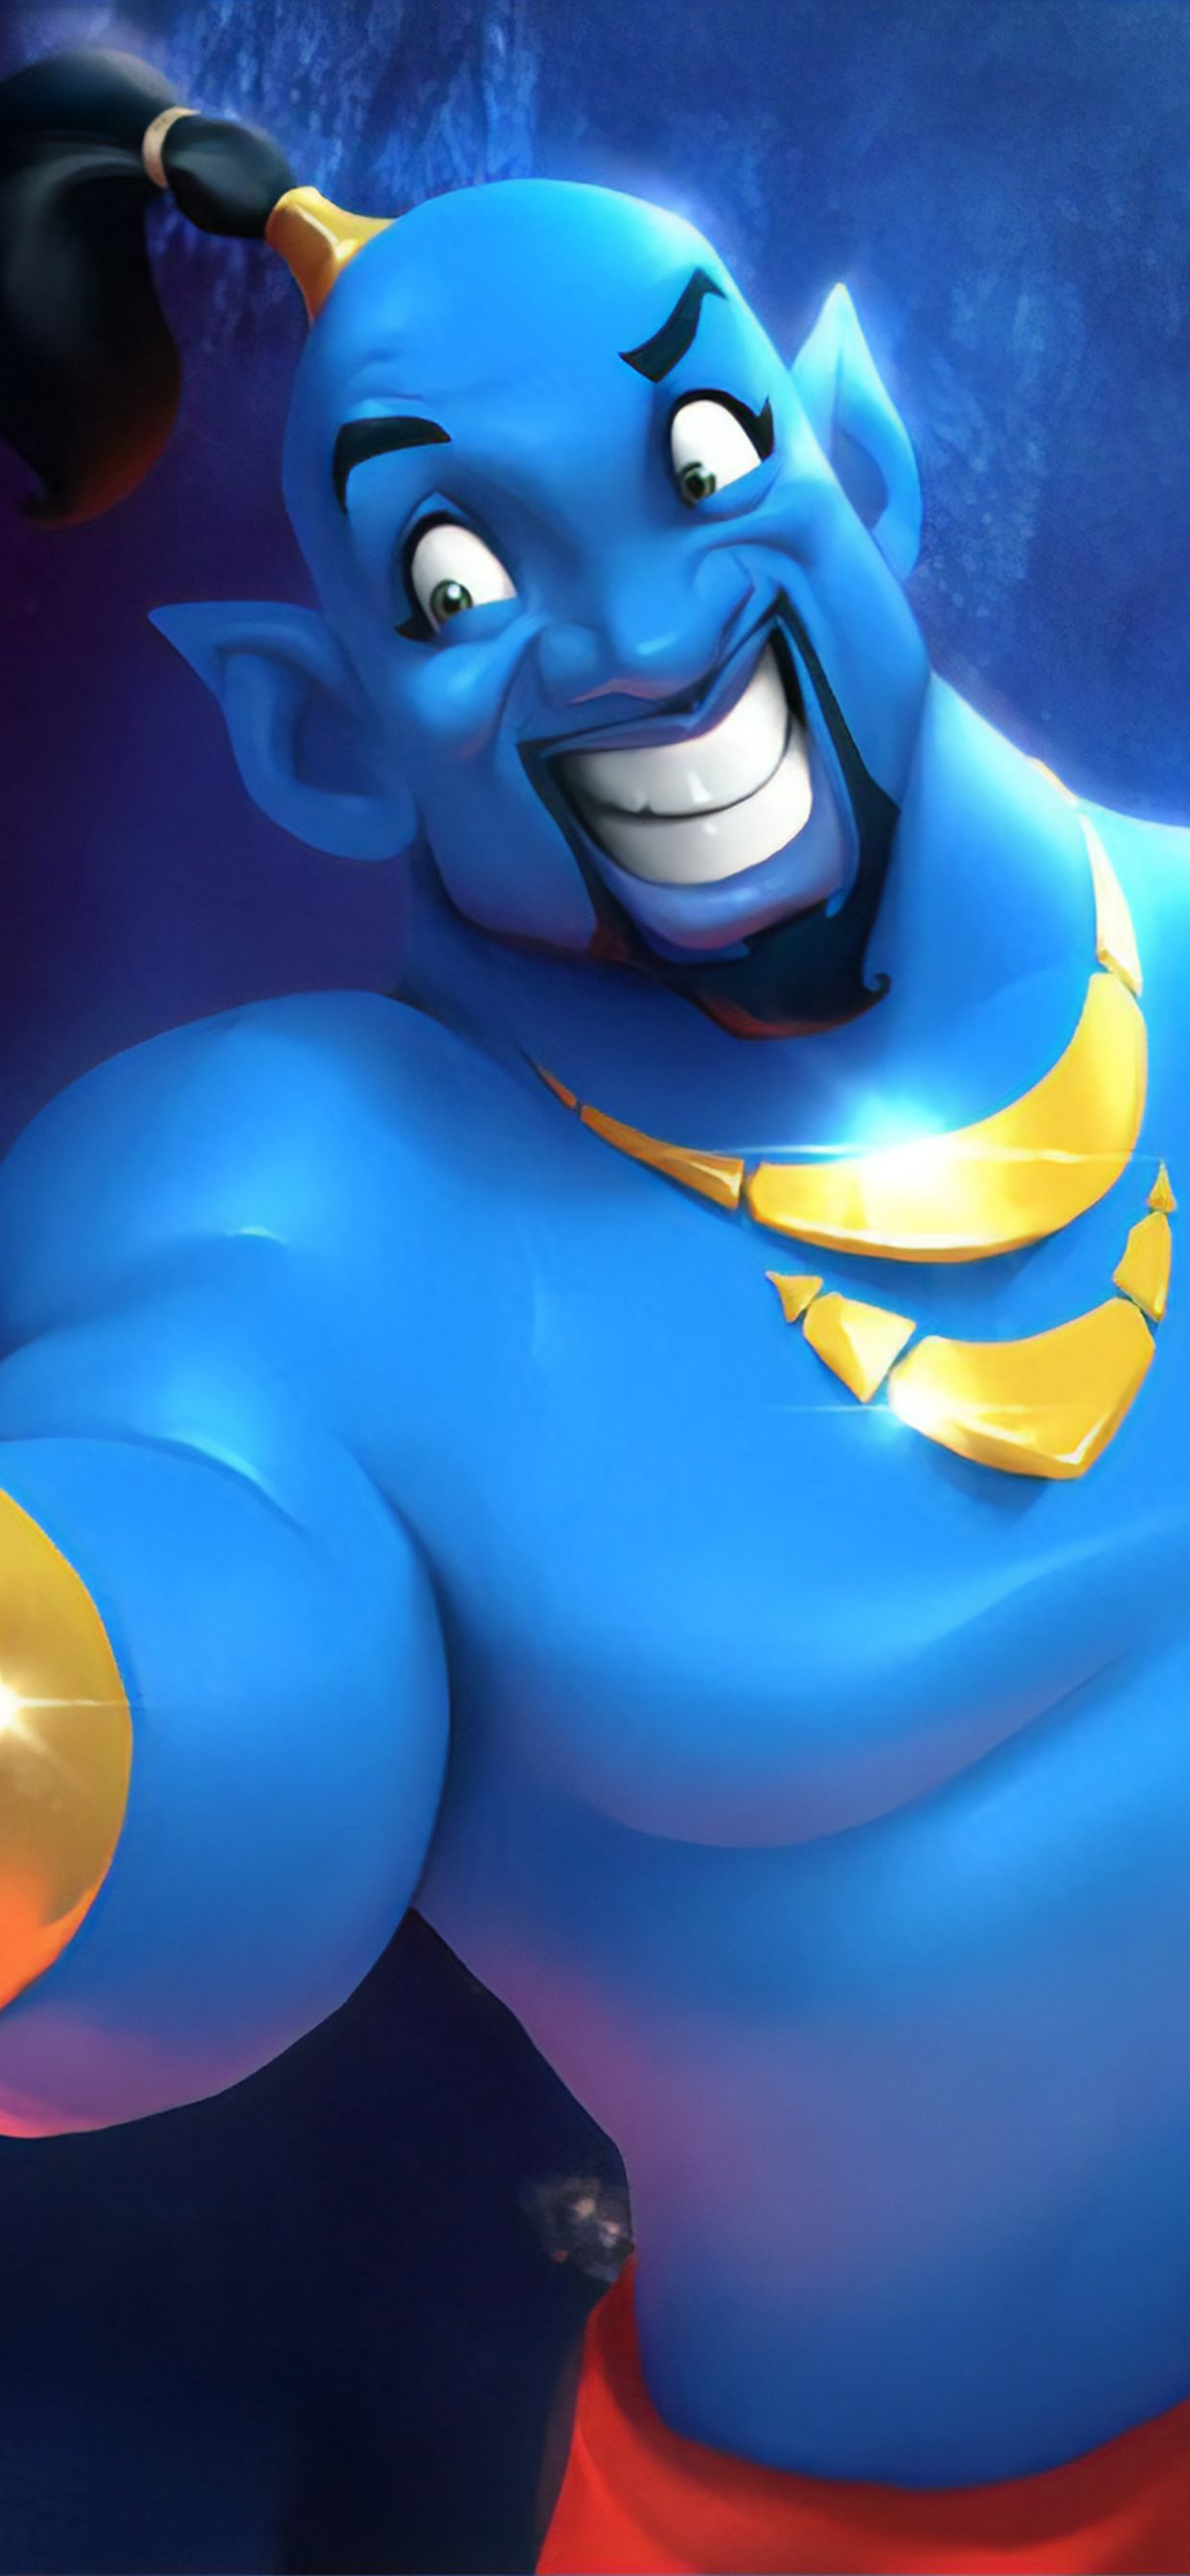 Will Smith As Genie Cartoon Art Iphone Wallpapers Free Download